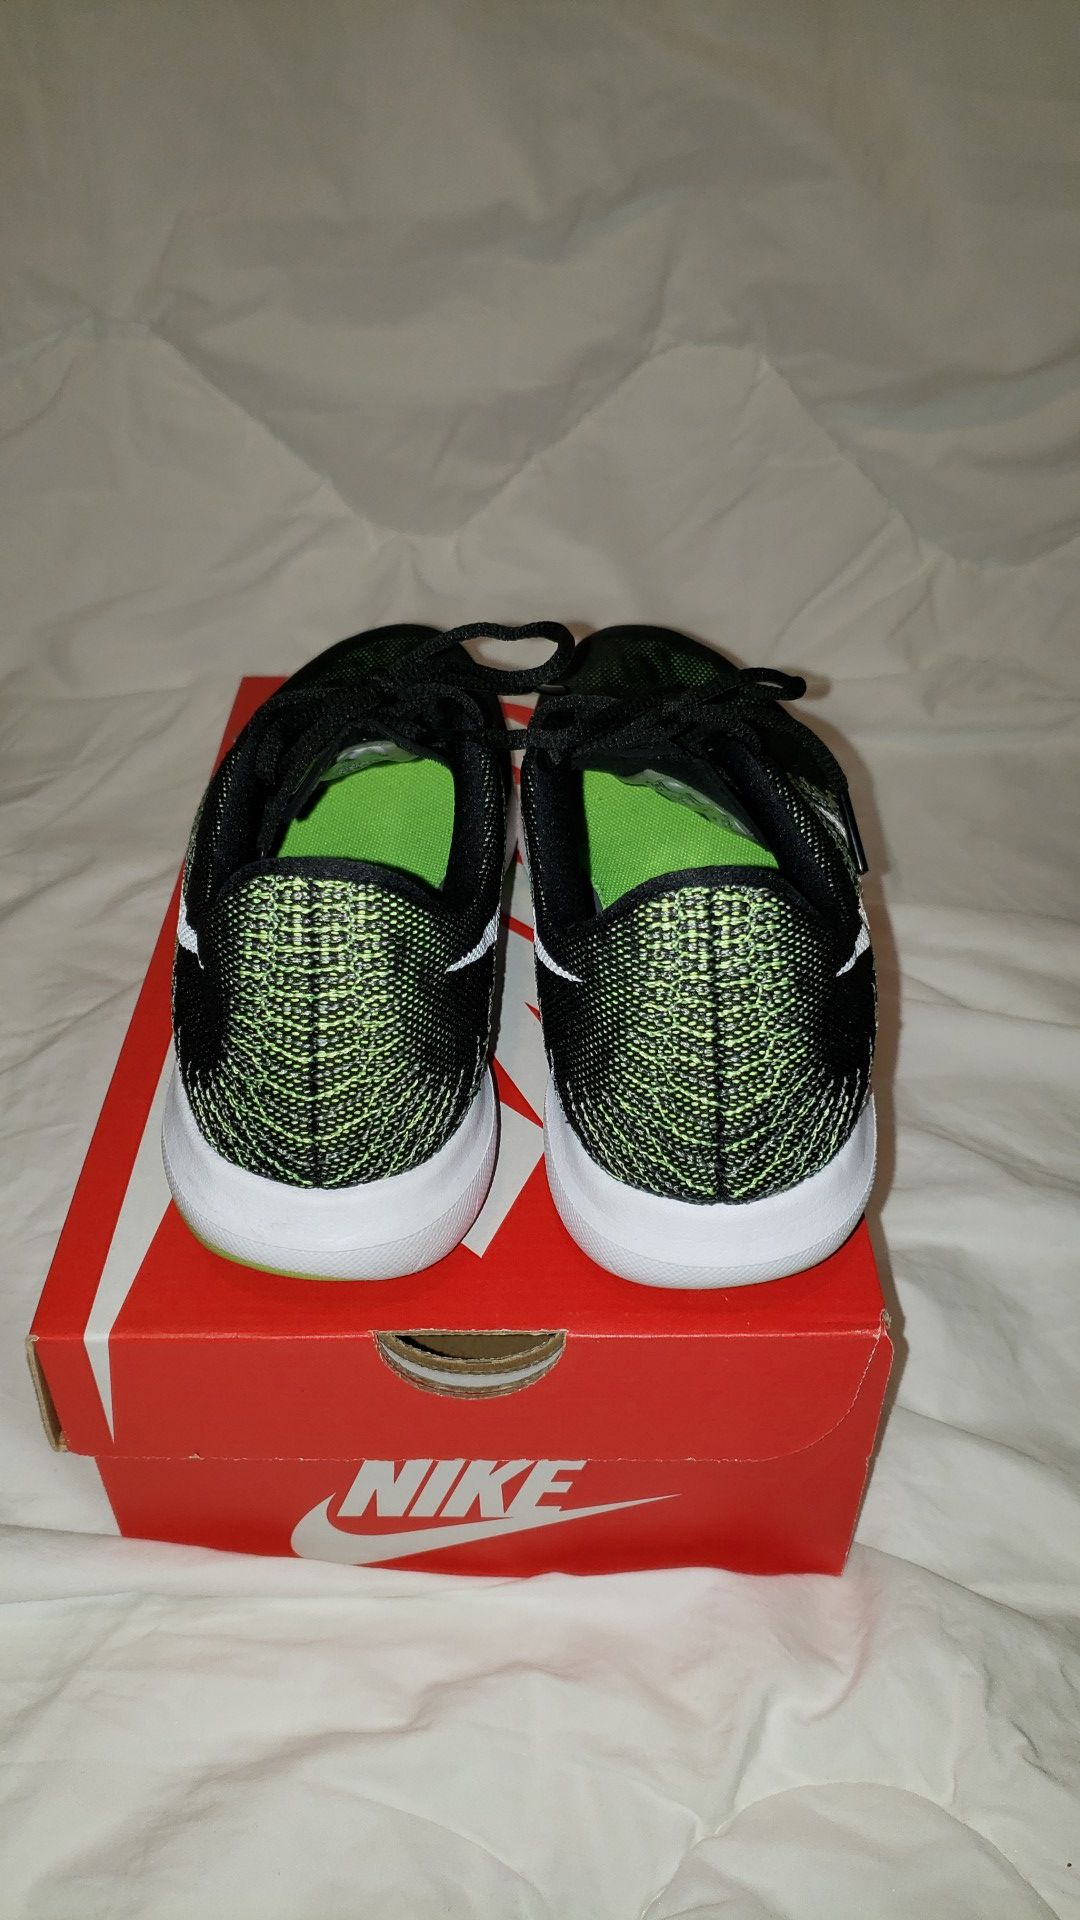 Nike shoes kids size 5.5Y